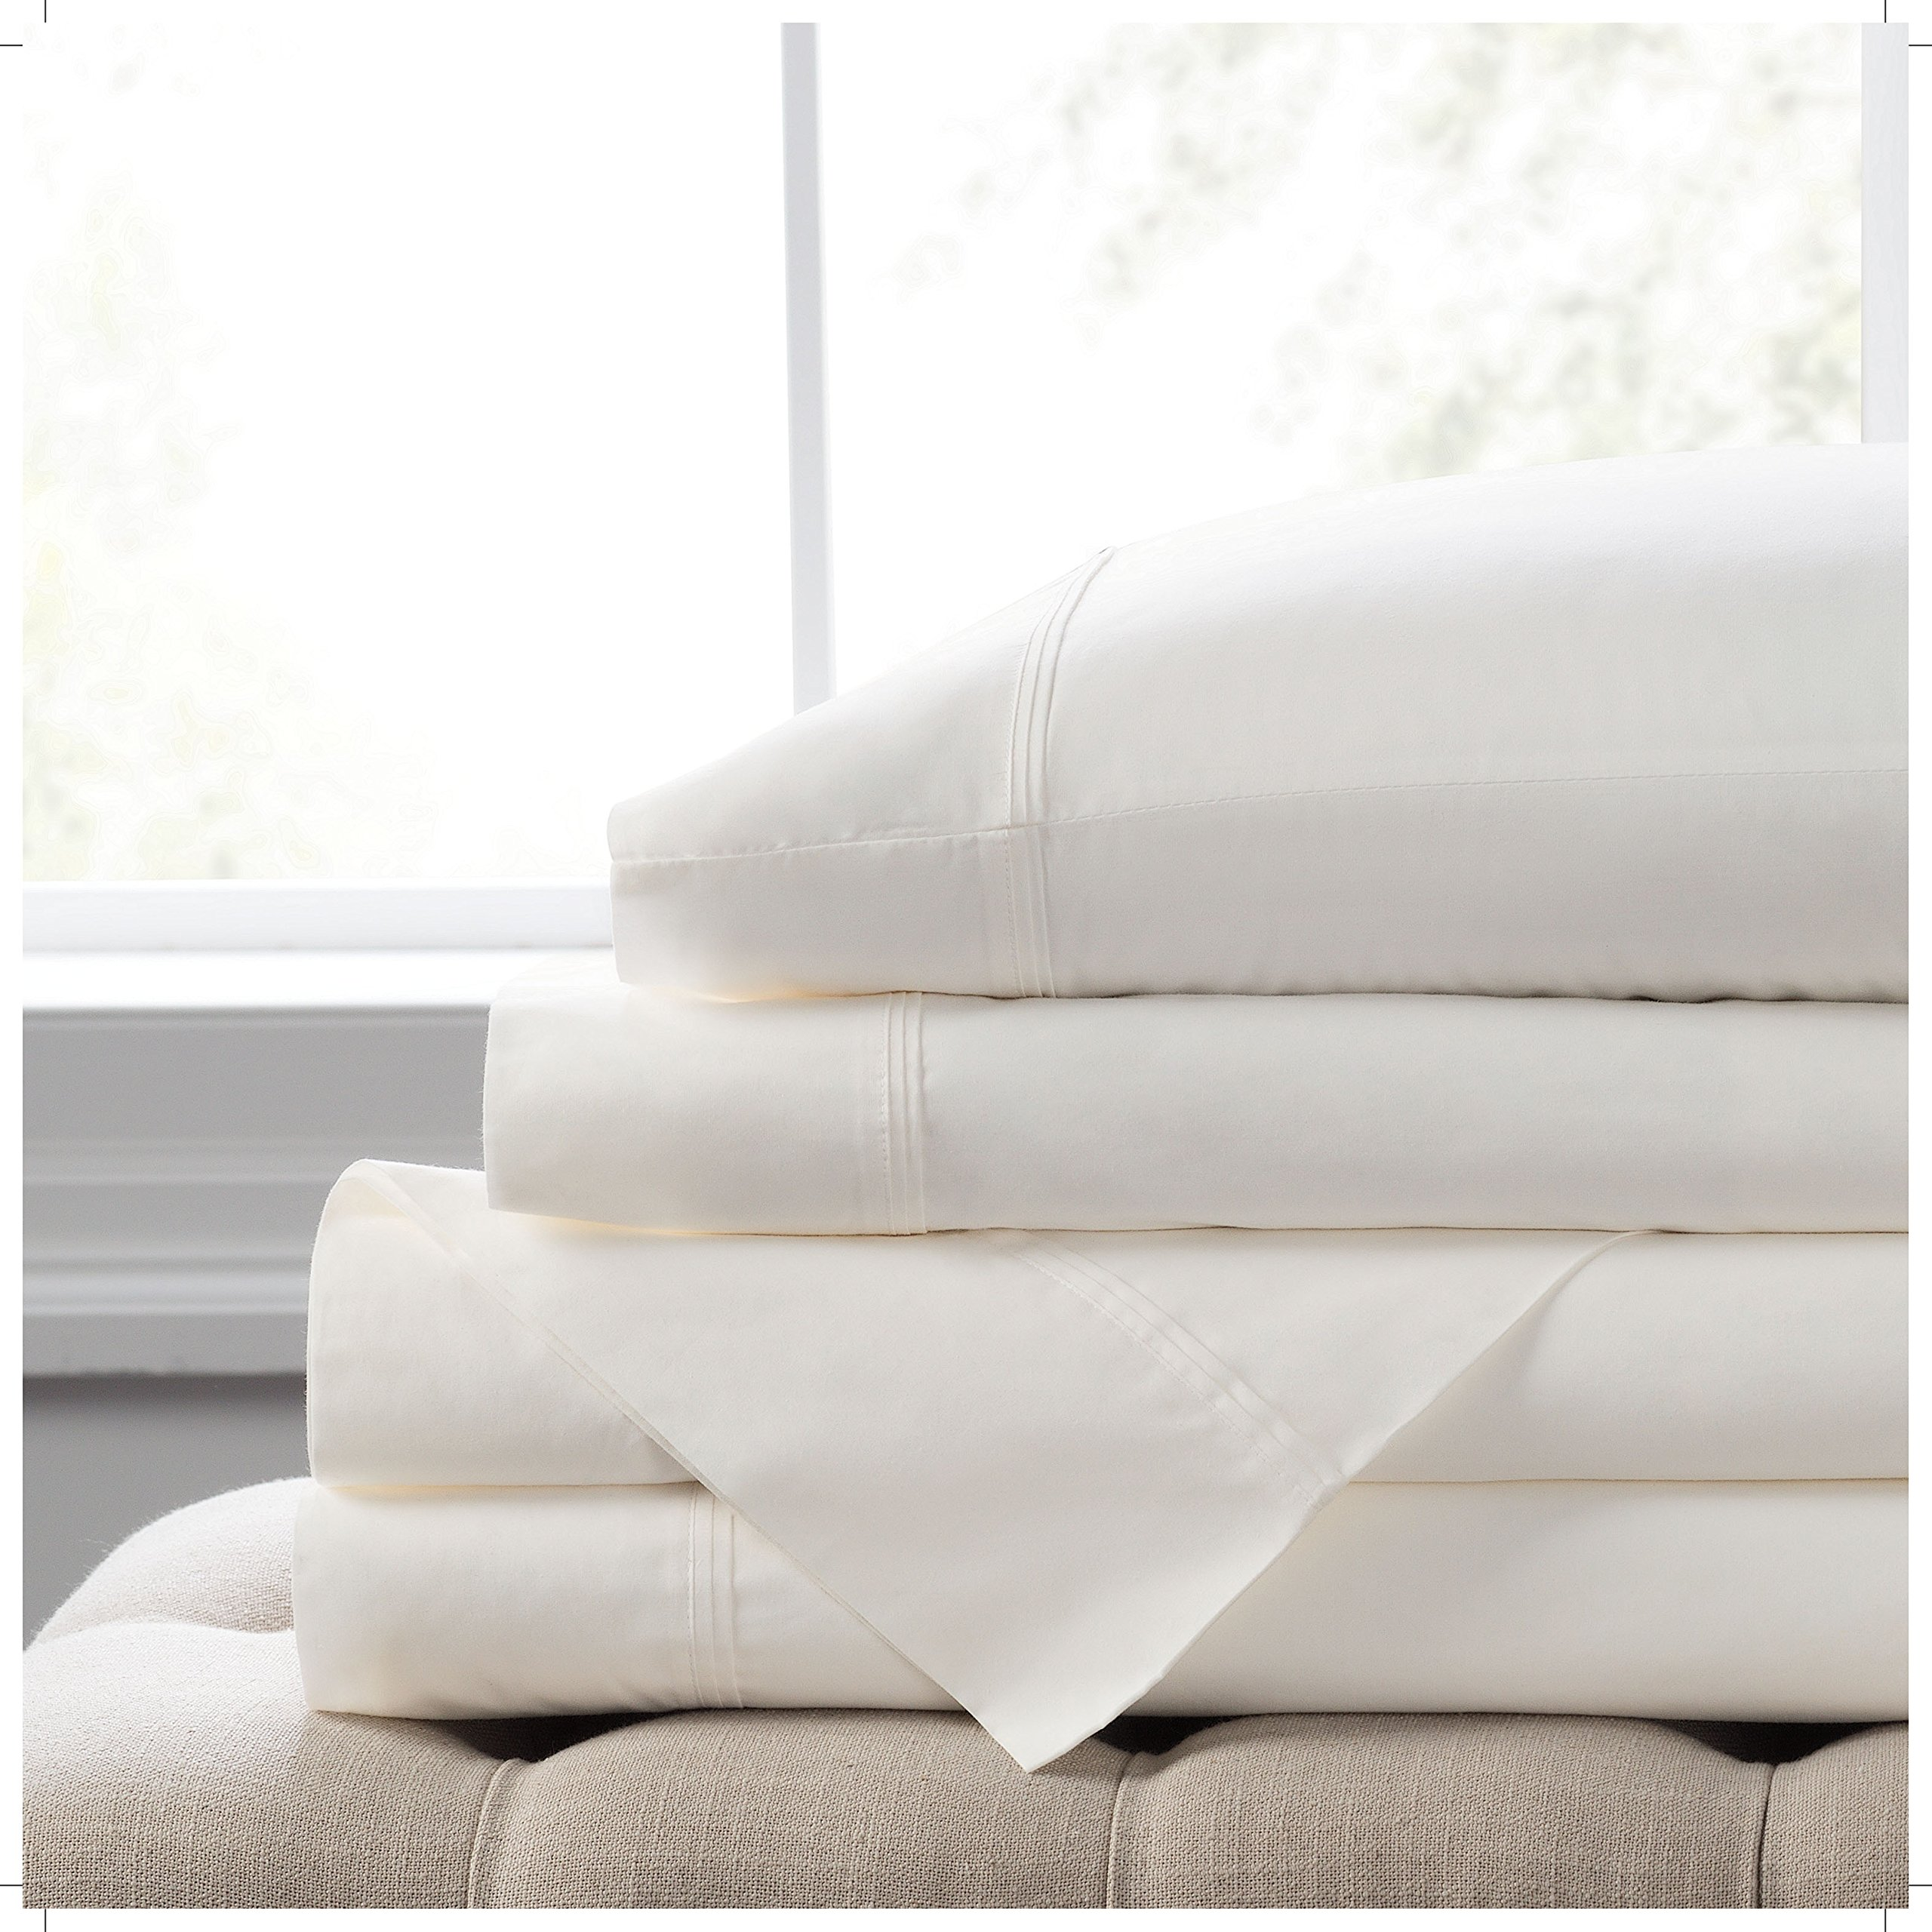 """Elizabeth Arden Light-Weight 100% Long-Staple Cotton Percale 4-Piece Sheet Set - Natural Pure 300 Thread Count – Crisp & Cool – Deep Fitted Pocket Fits Mattress up to 18"""" - California King - White"""